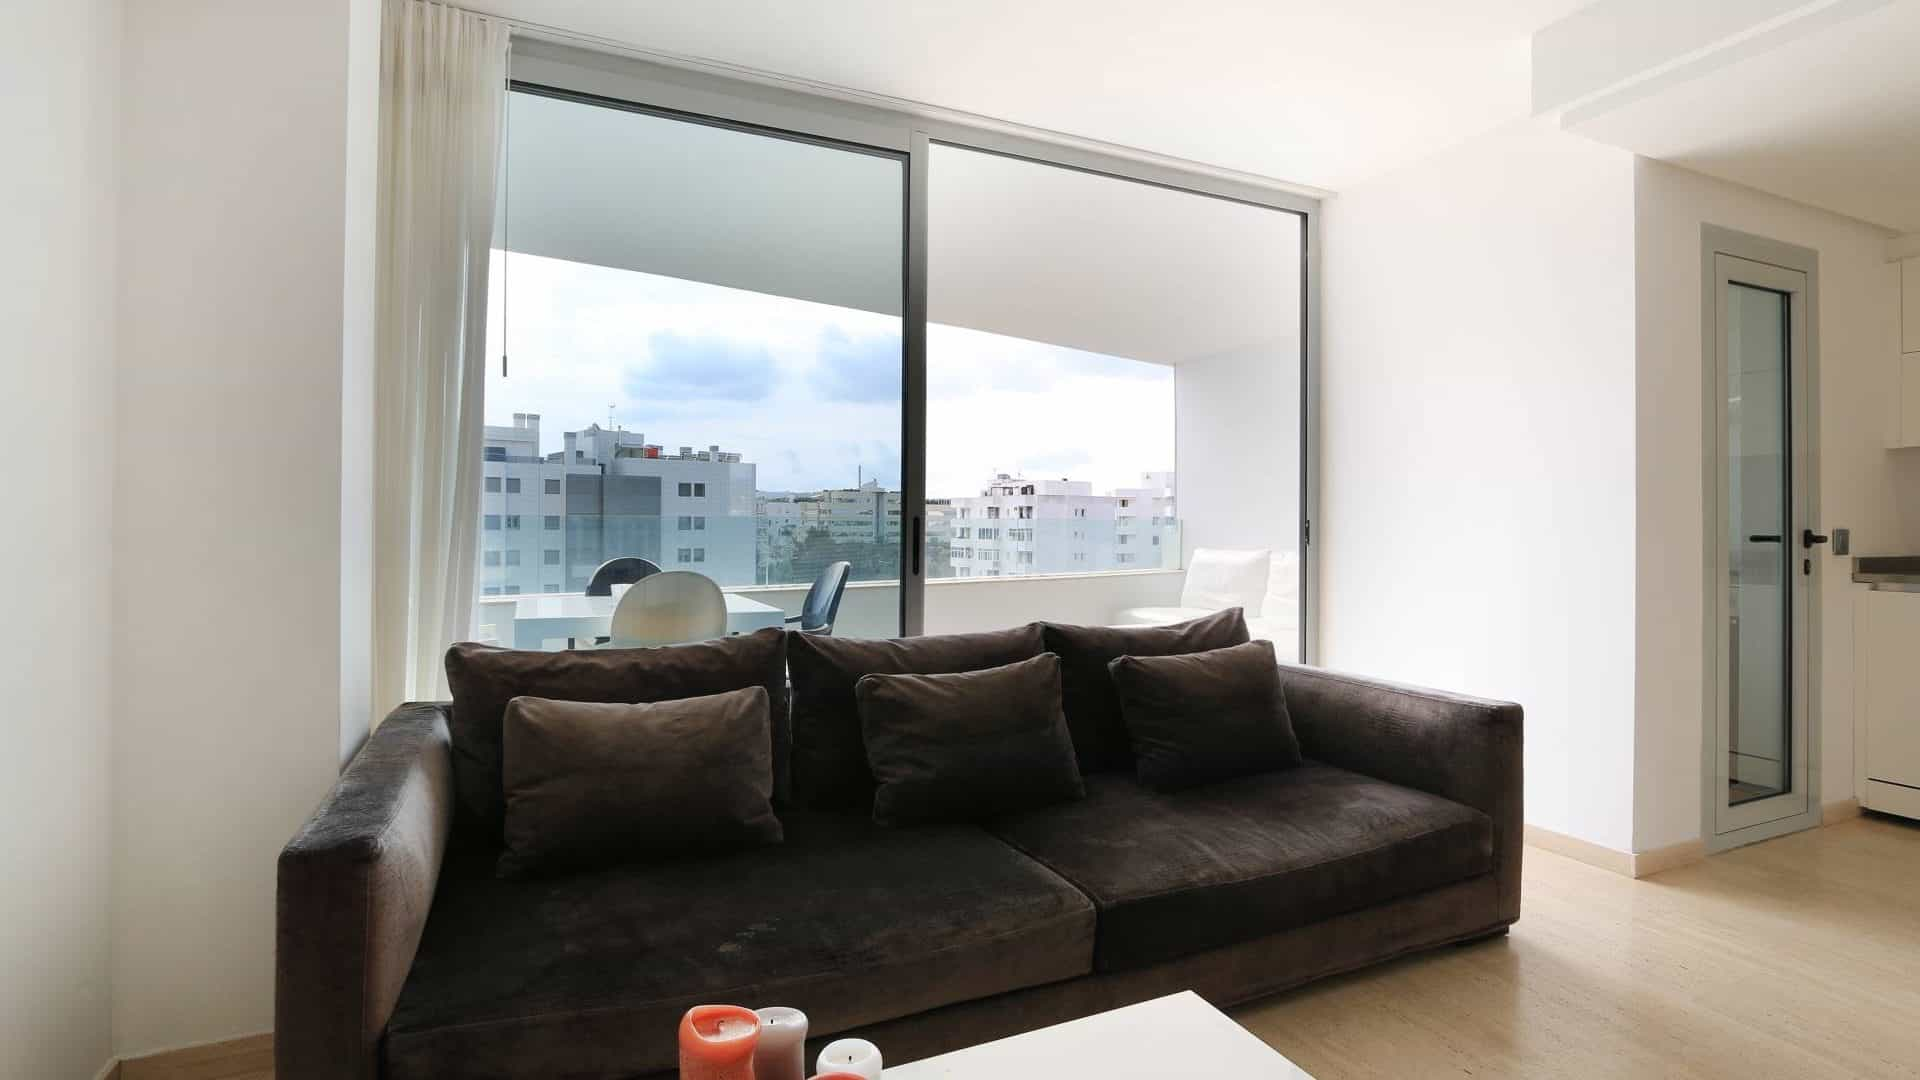 Valor Real seasonal rental 3 bedroom apartment.